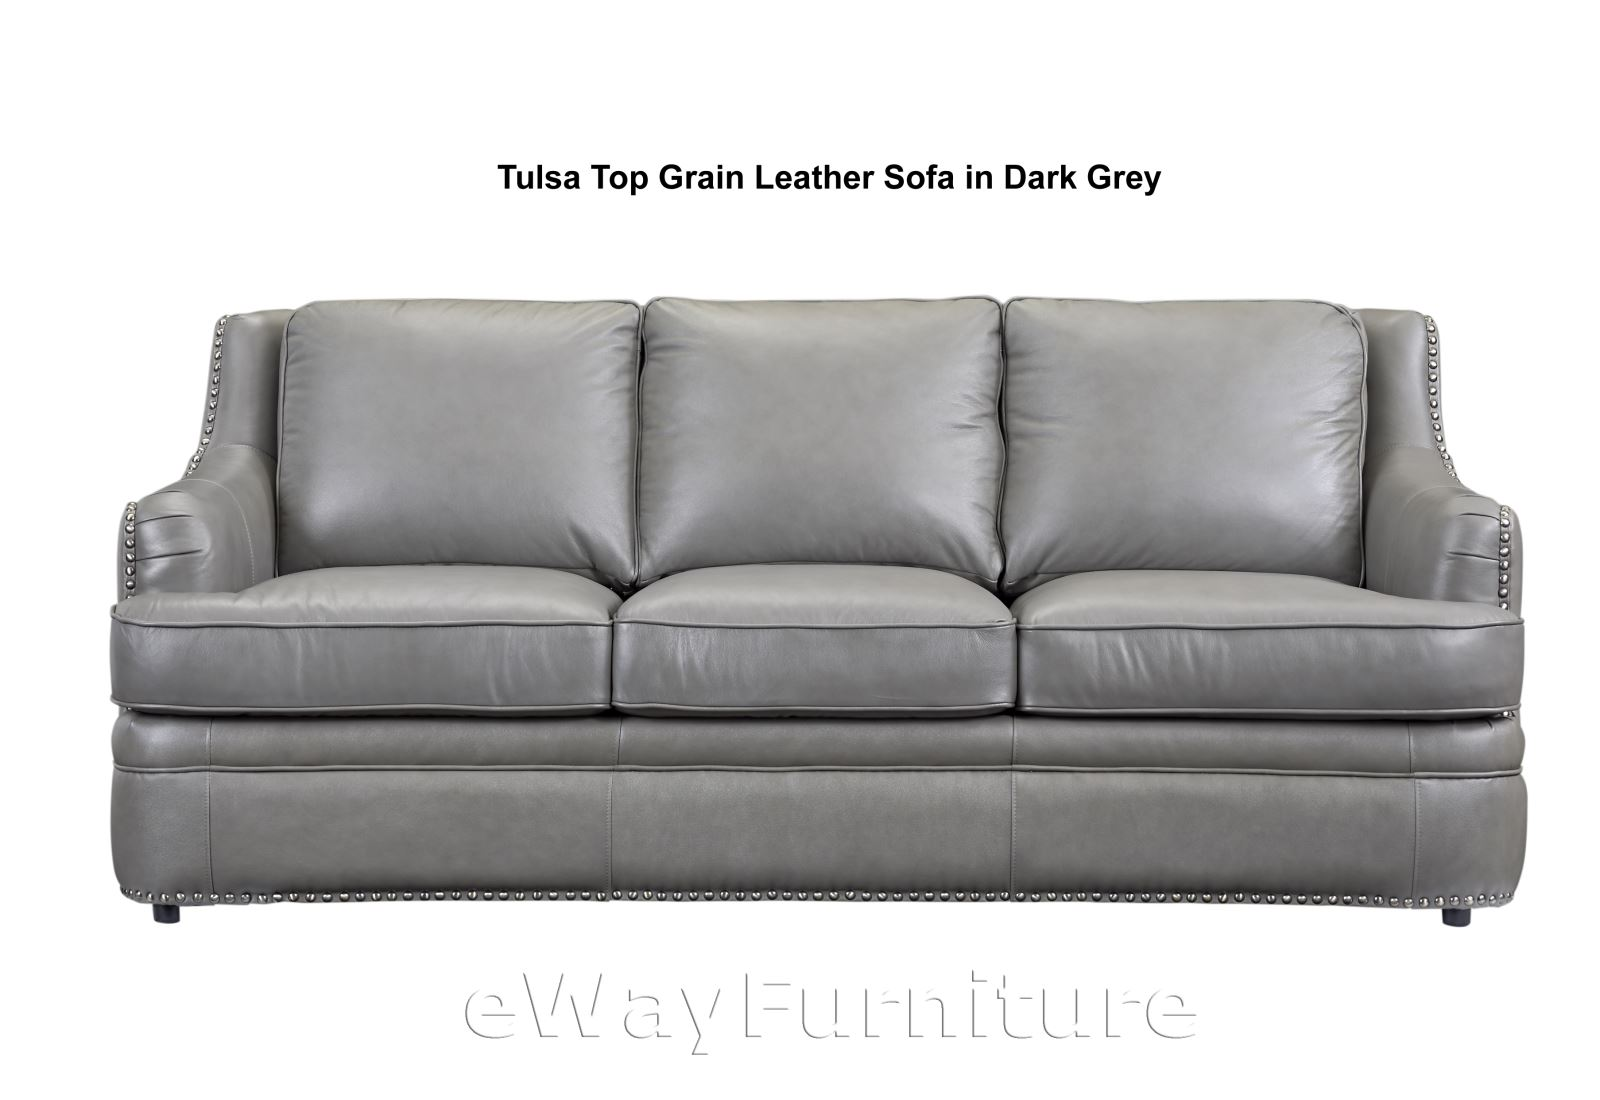 tulsa top grain leather sofa in dark grey